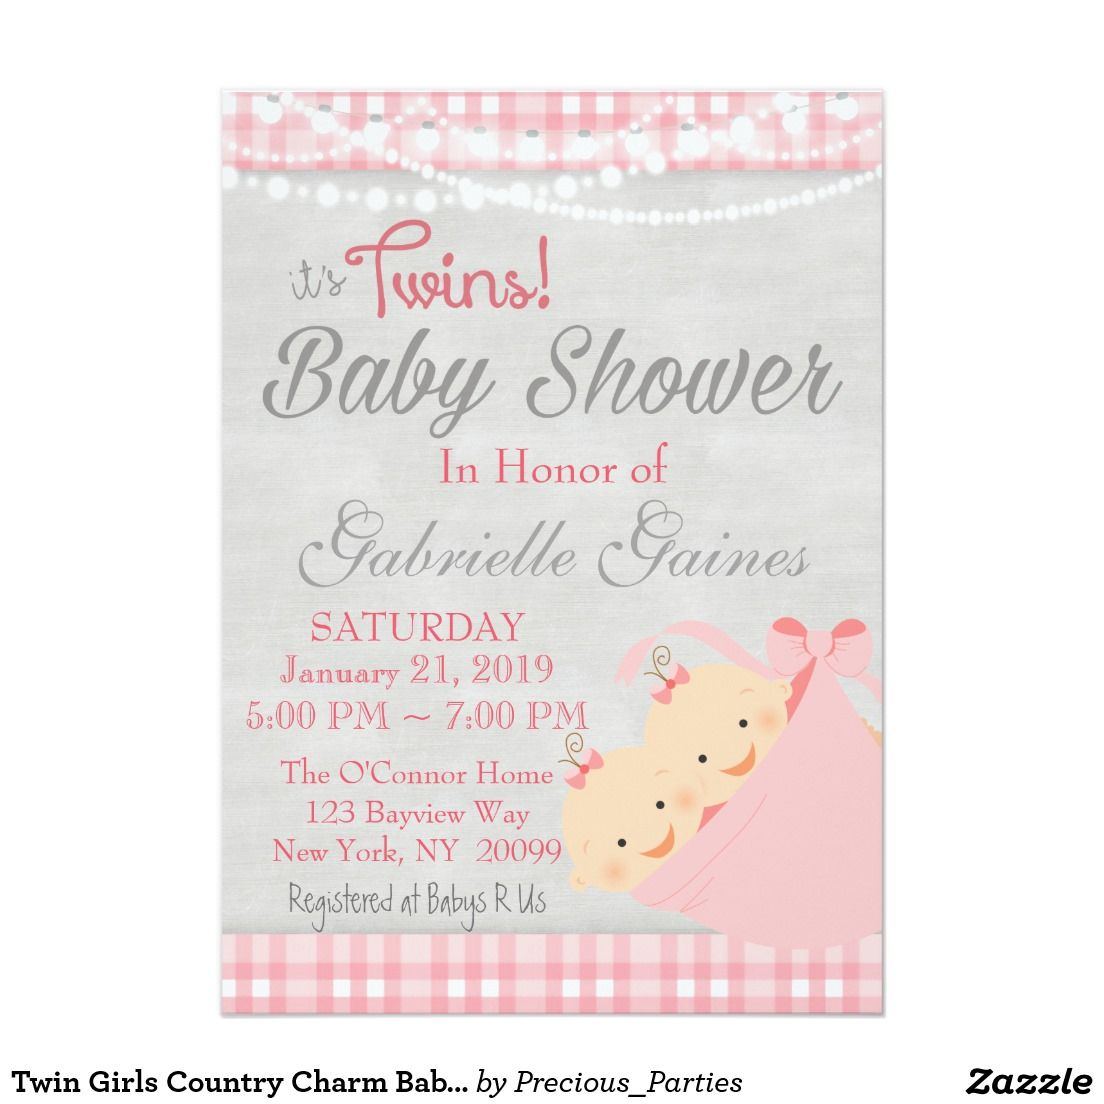 Twin Girls Country Charm Baby Shower Invitation | Twin Babies ...